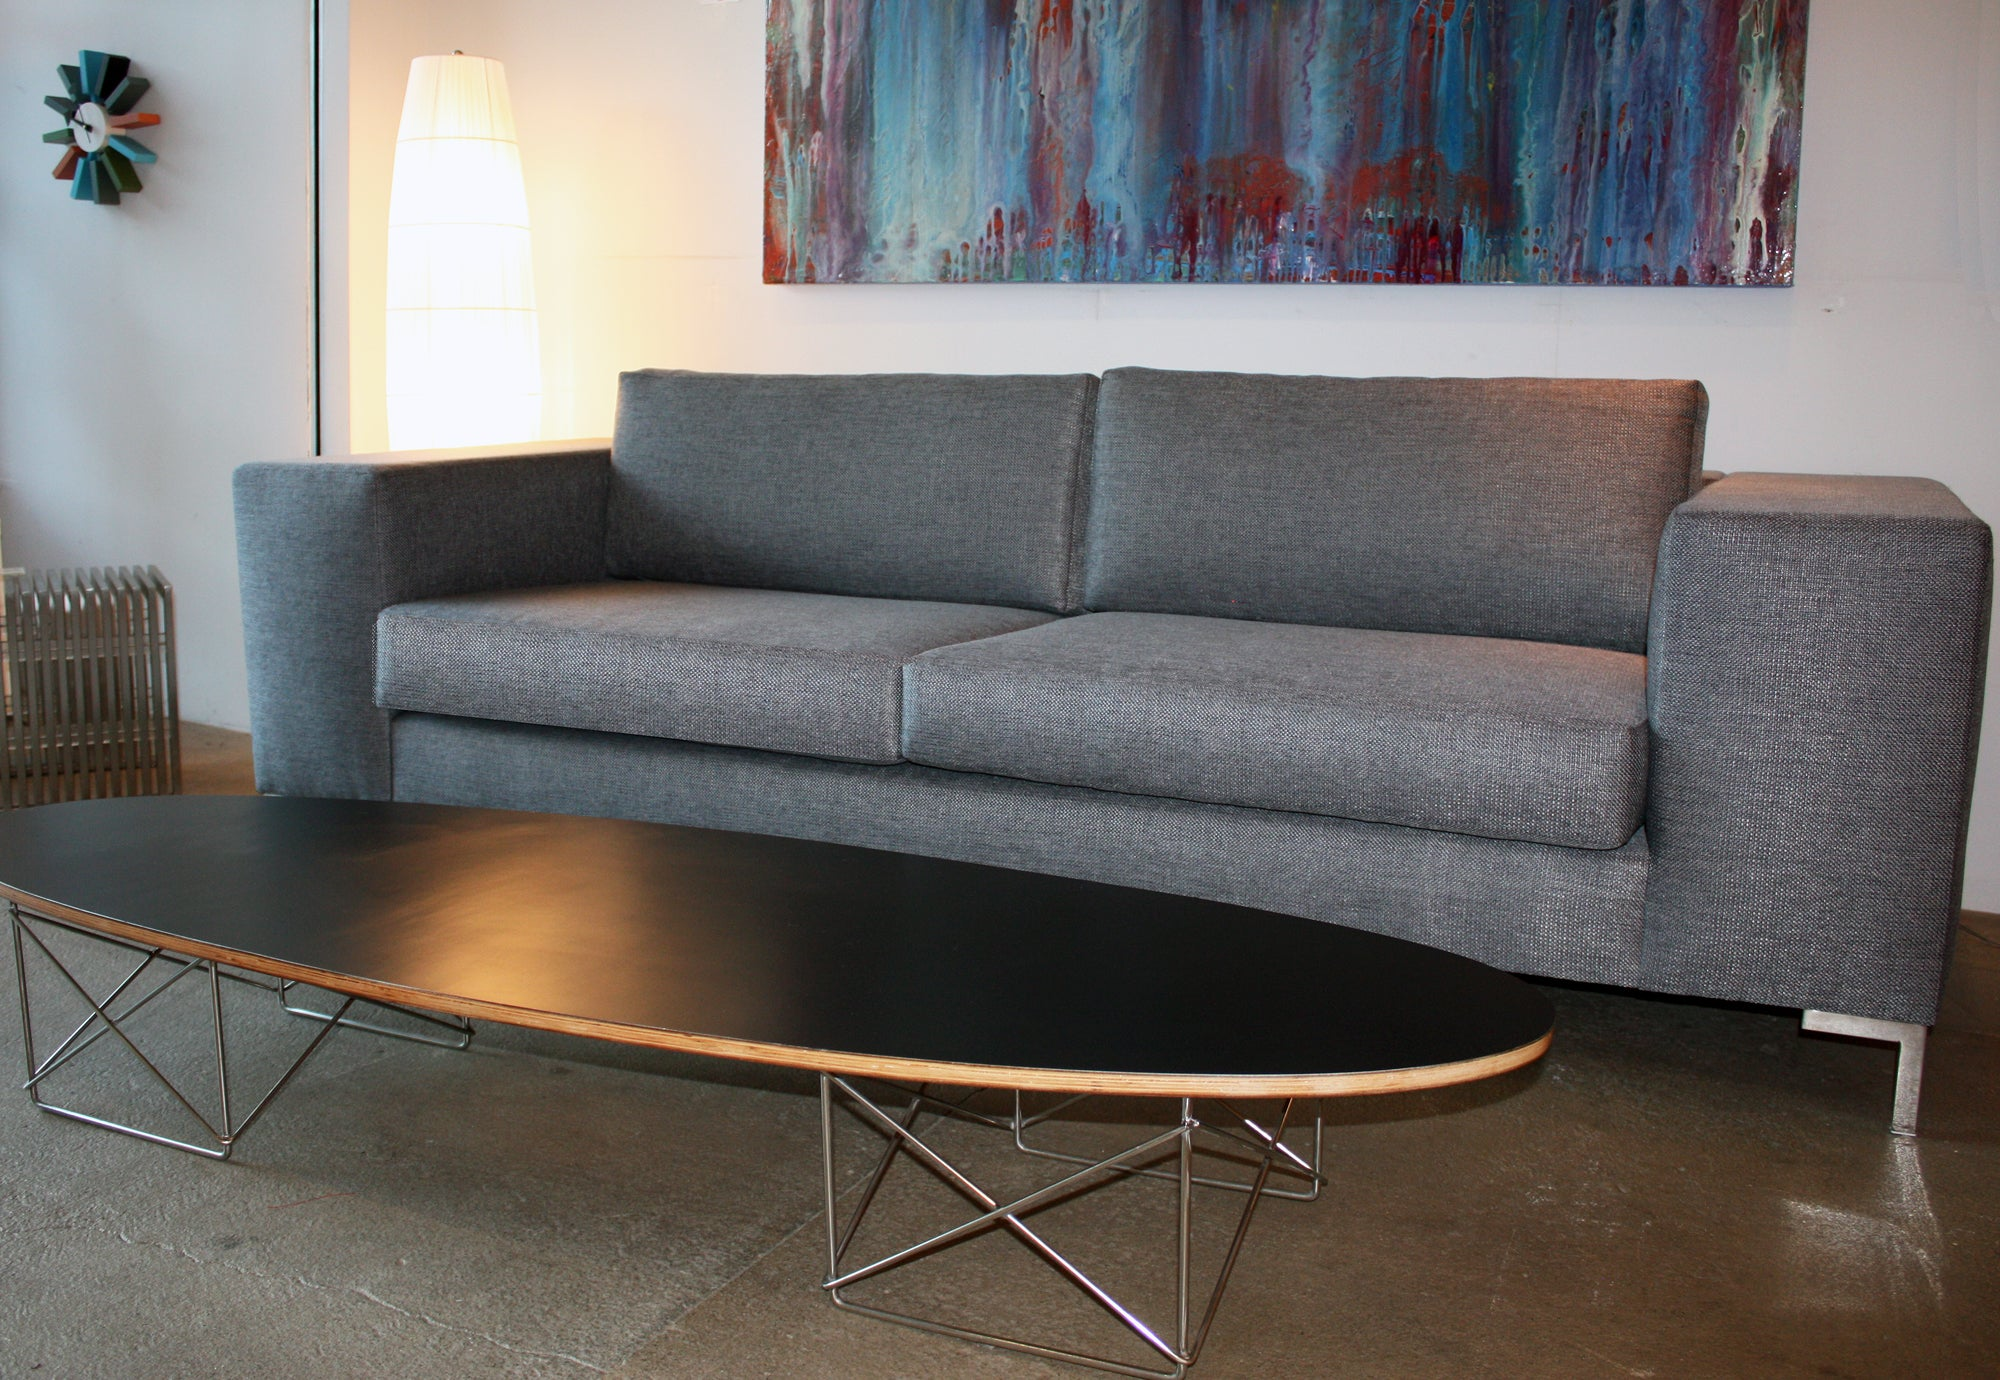 Decenni Custom Seven-foot Otto Sofa